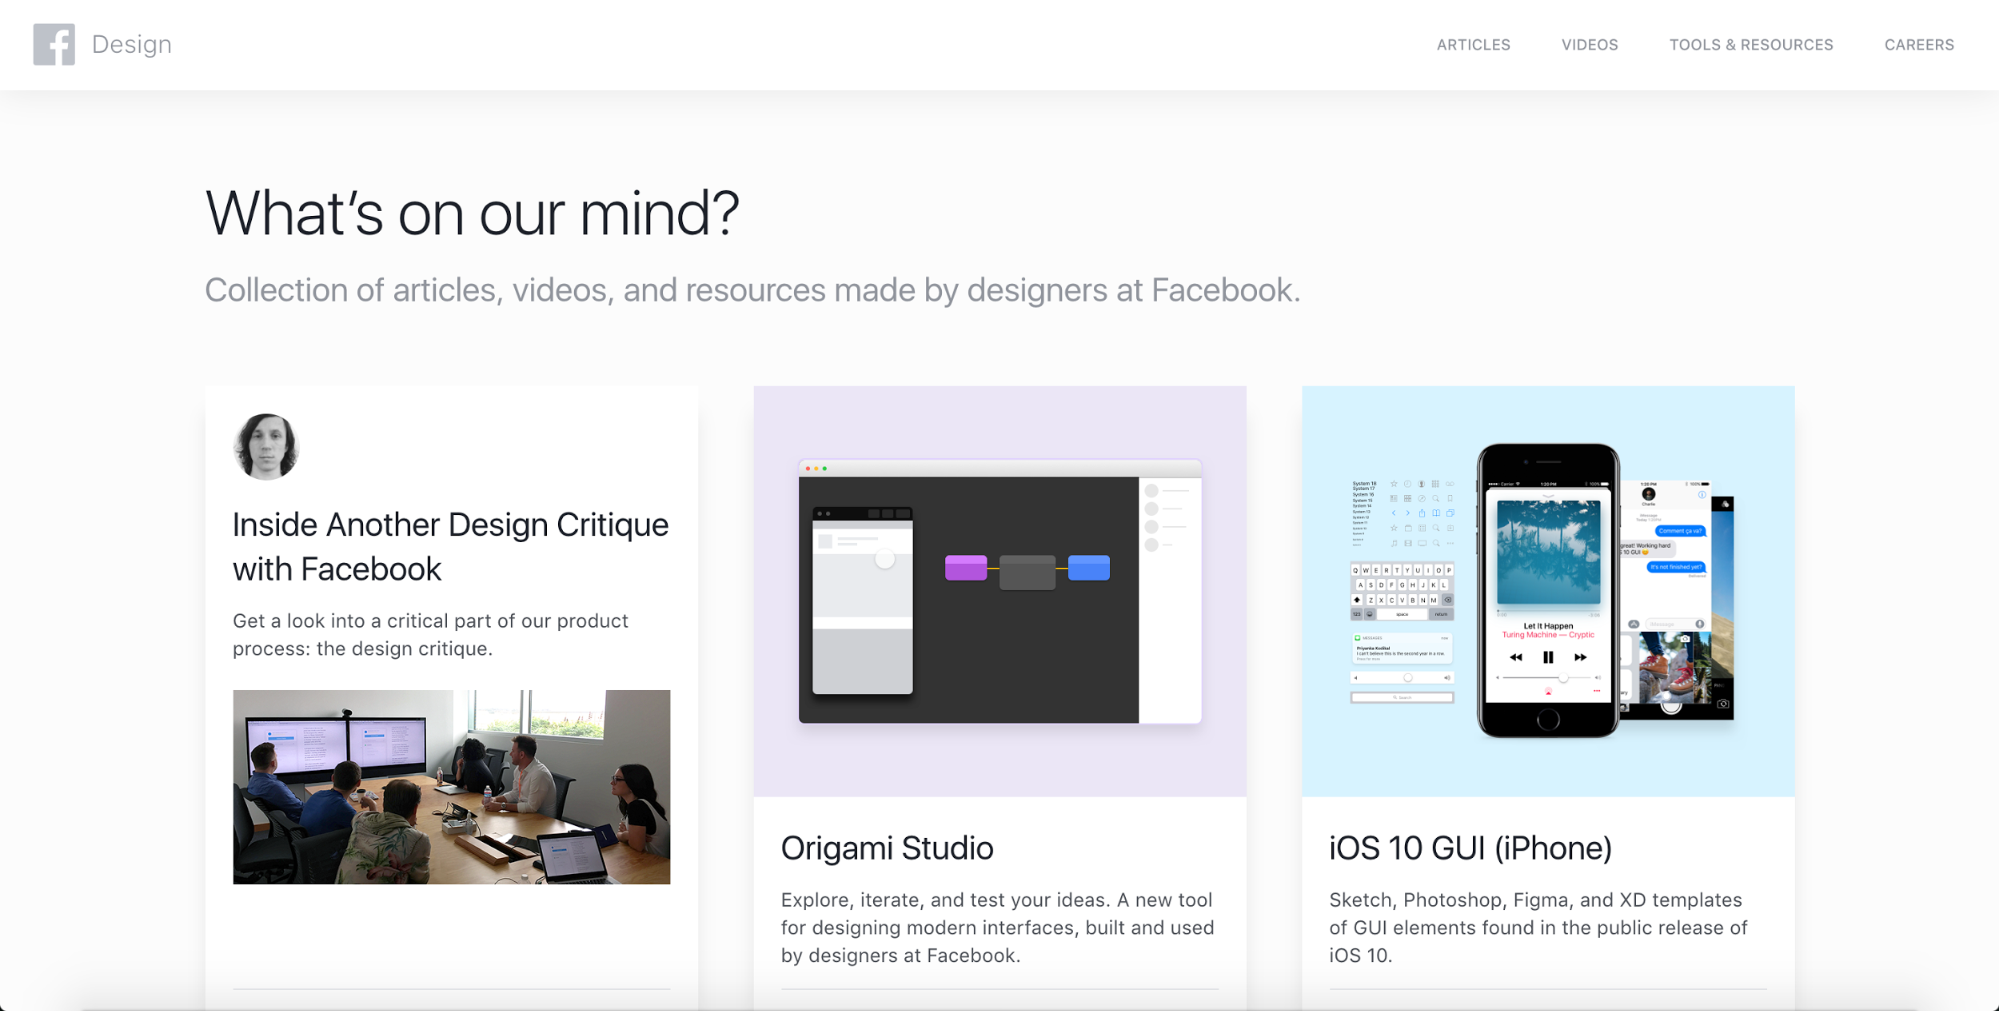 facebookdesign homepage - Web Design Ideas